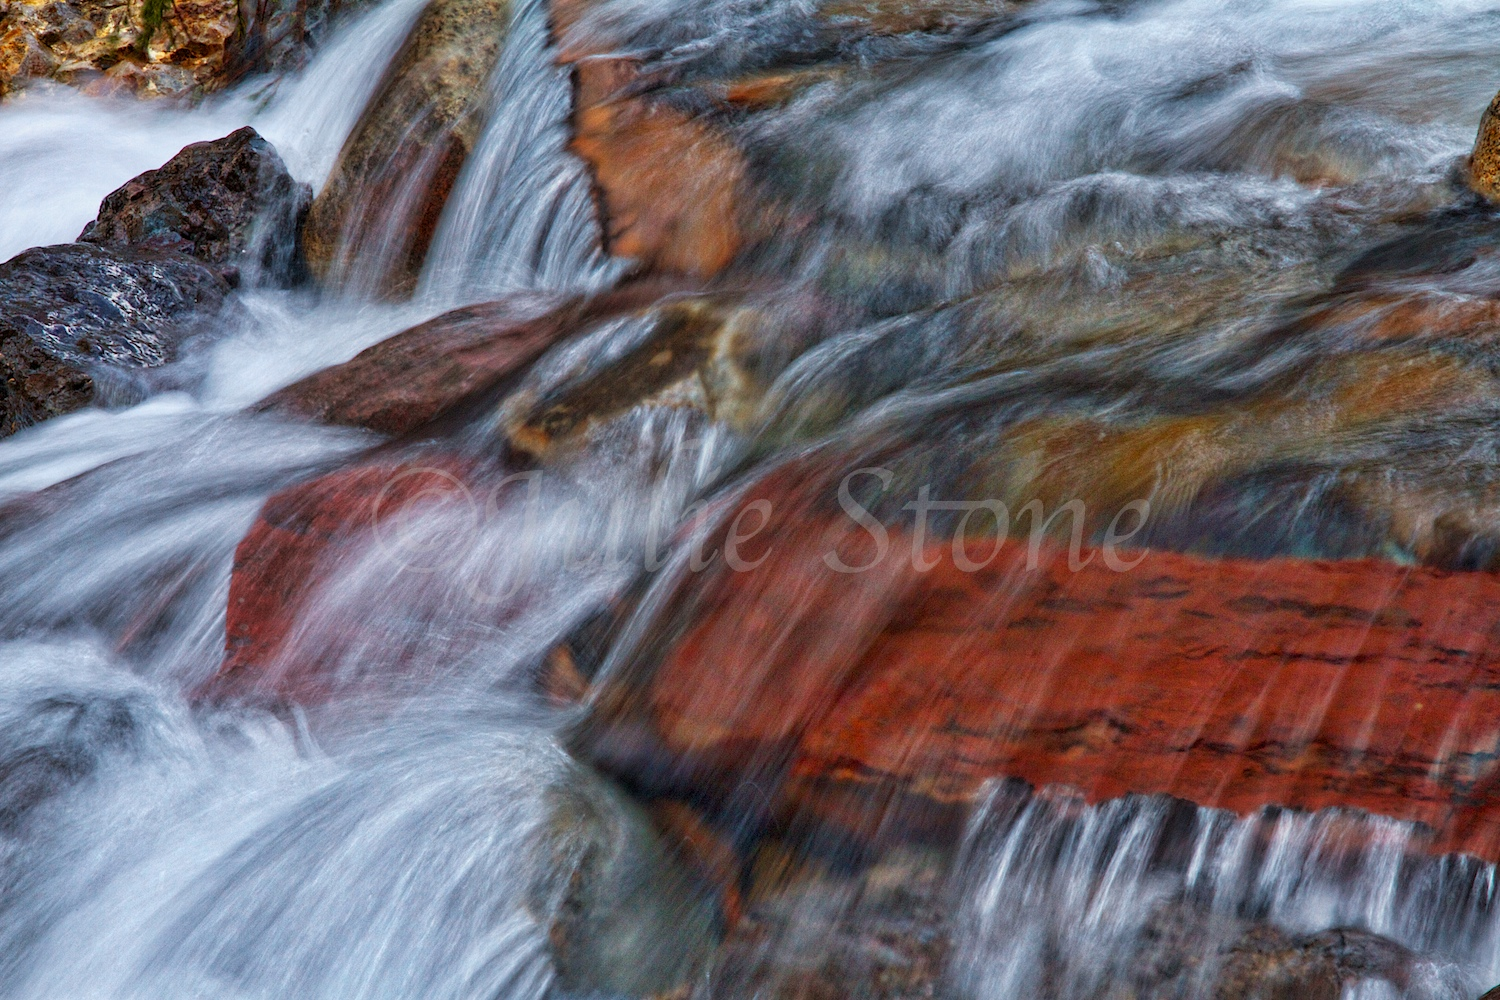 SOUTH MINERAL ROAD RIVER ROCKS 2014 (3)